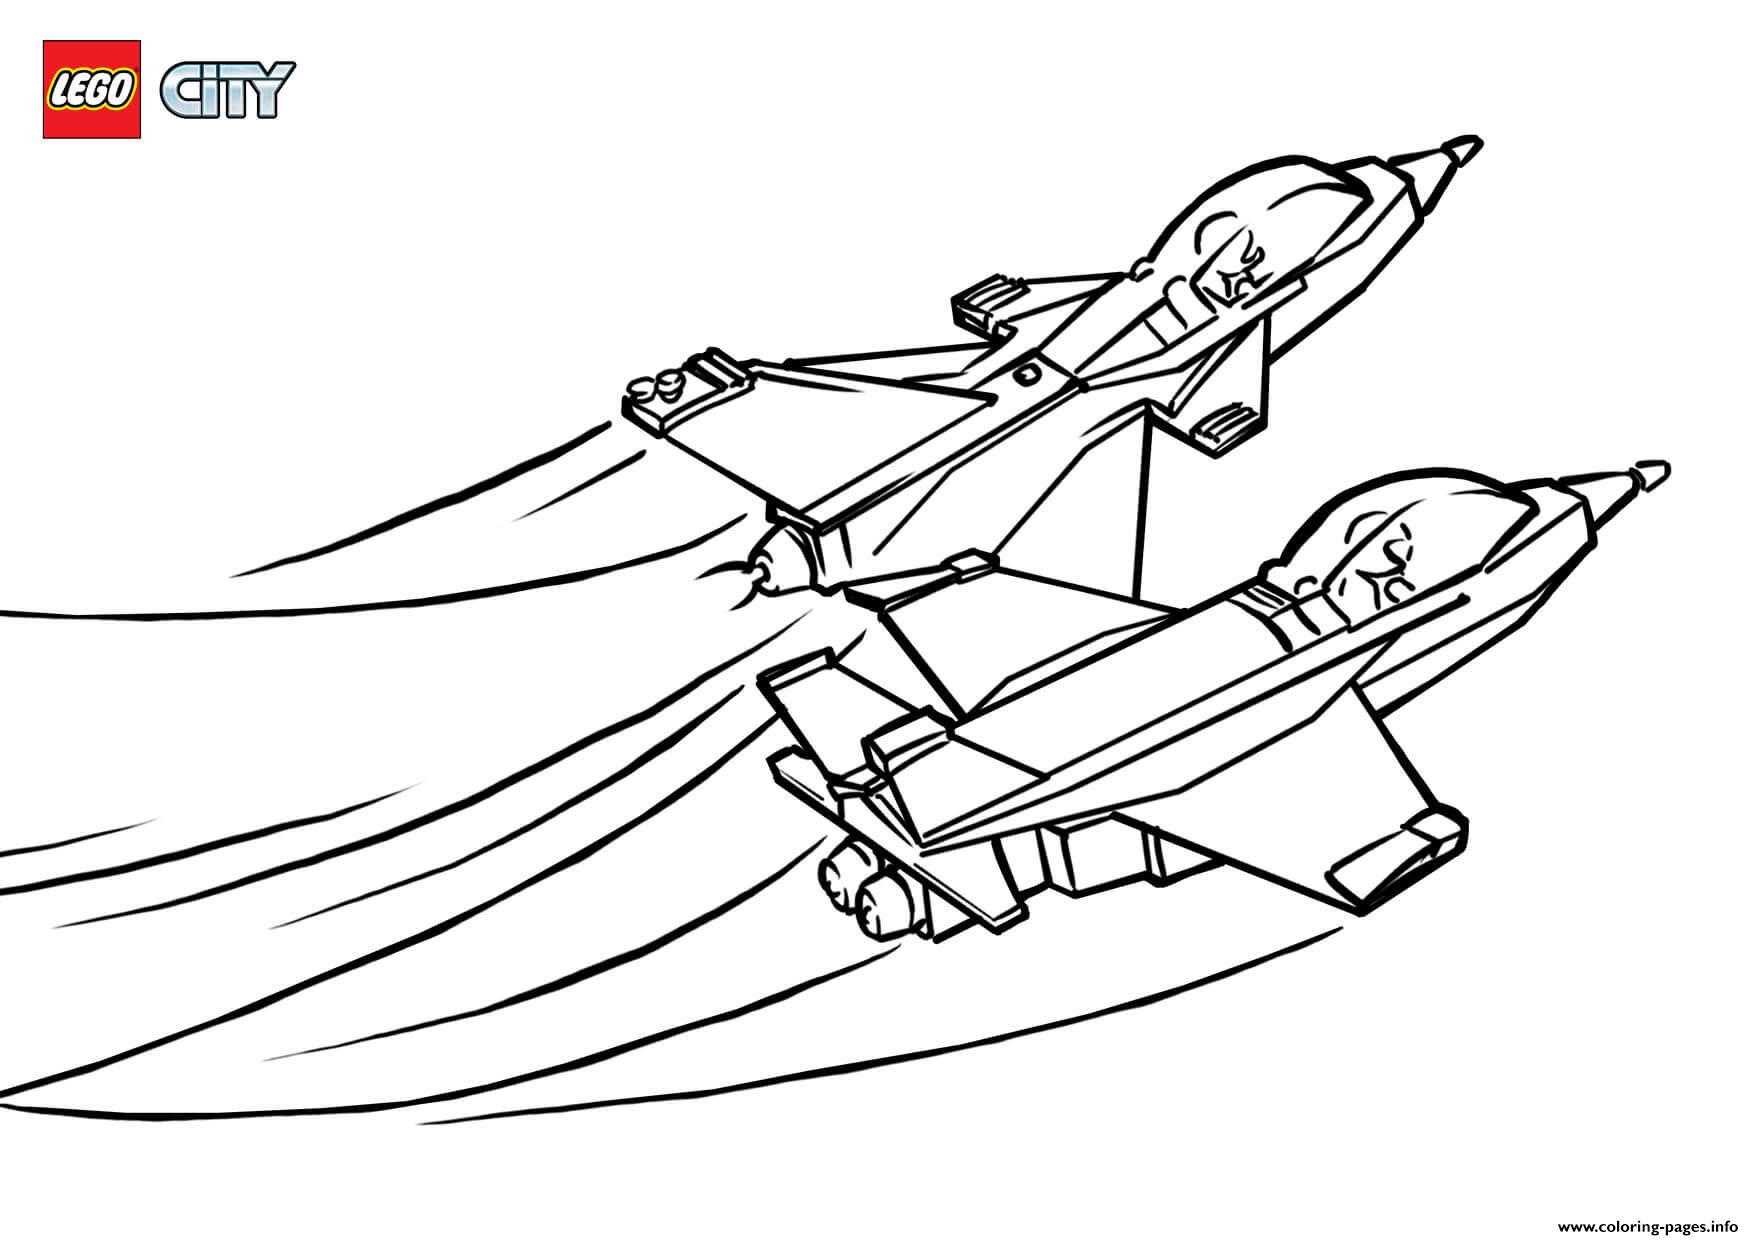 Lego City Jet Airport Coloring Pages Printable